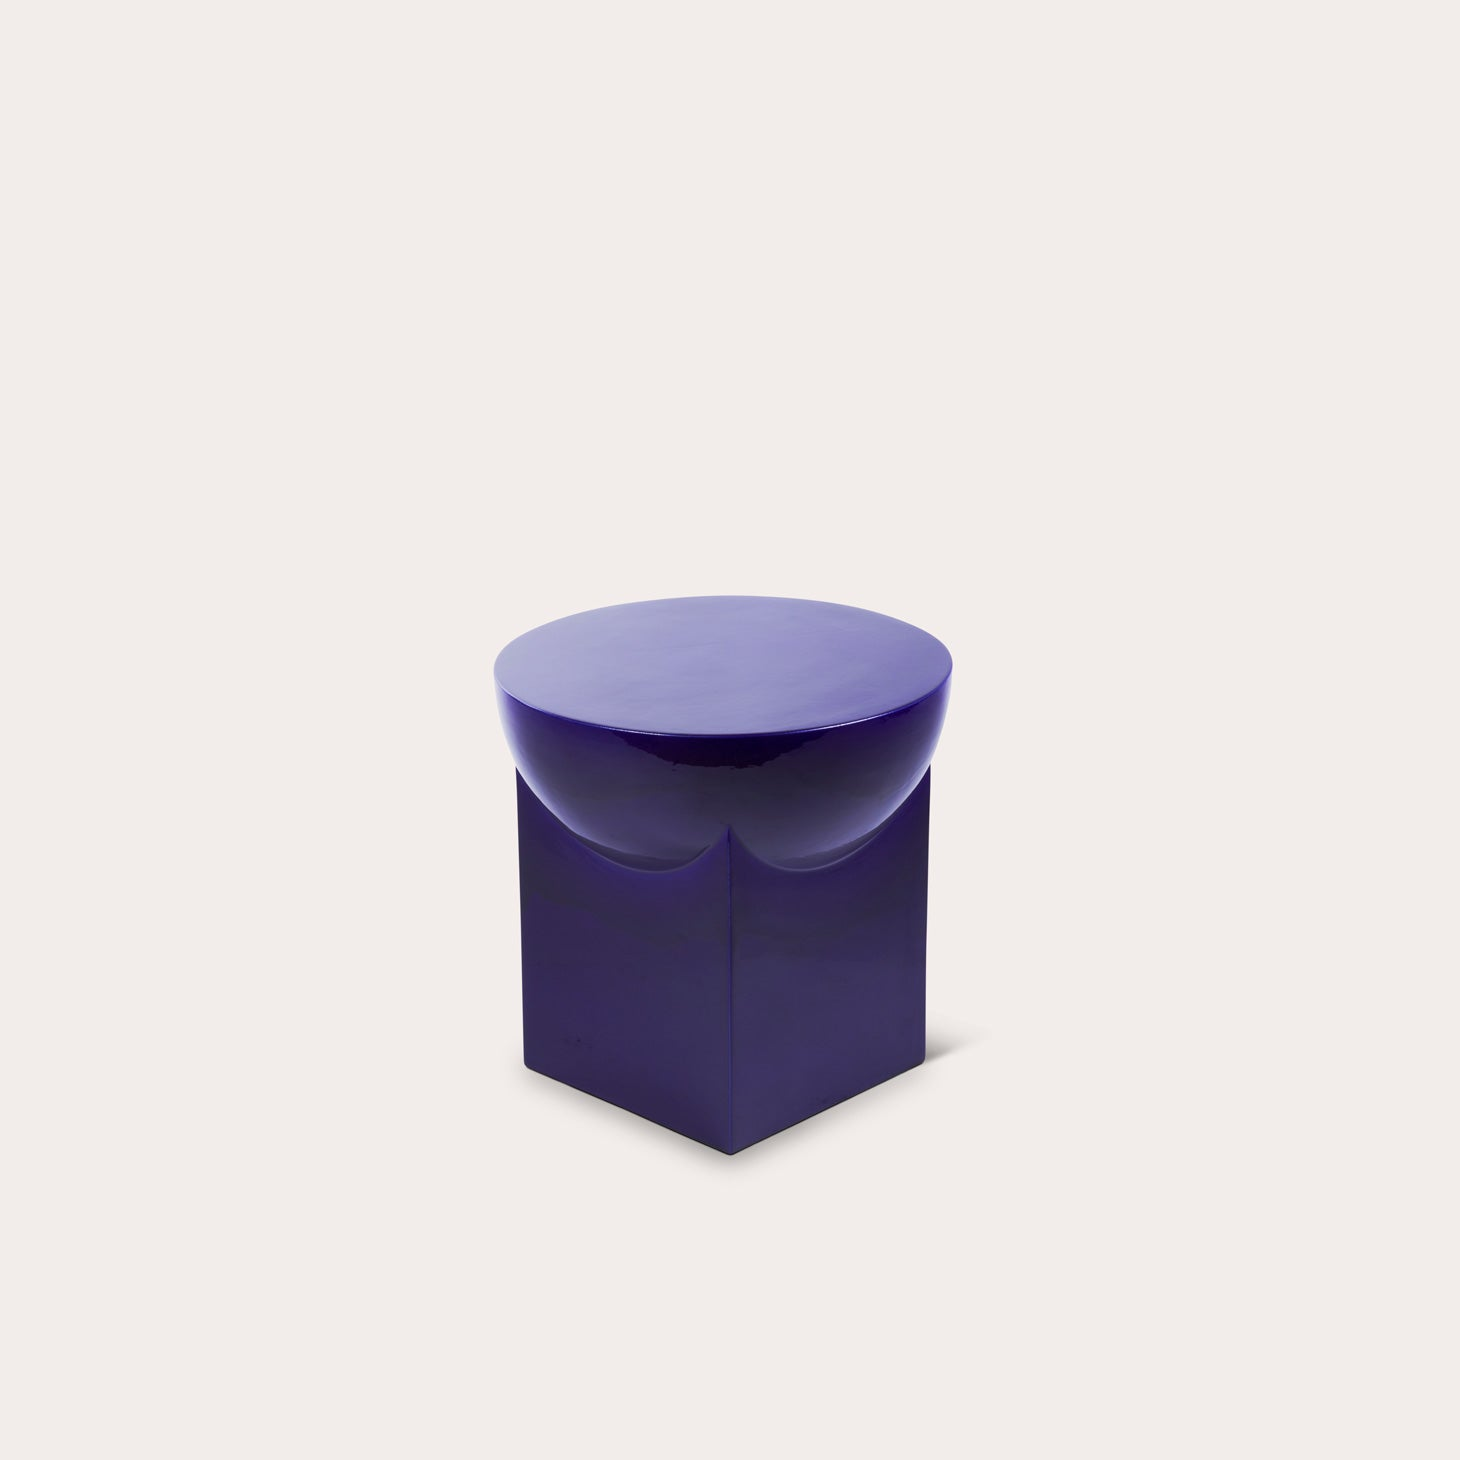 Mila Small Tables Sebastian Herkner Designer Furniture Sku: 747-230-10035